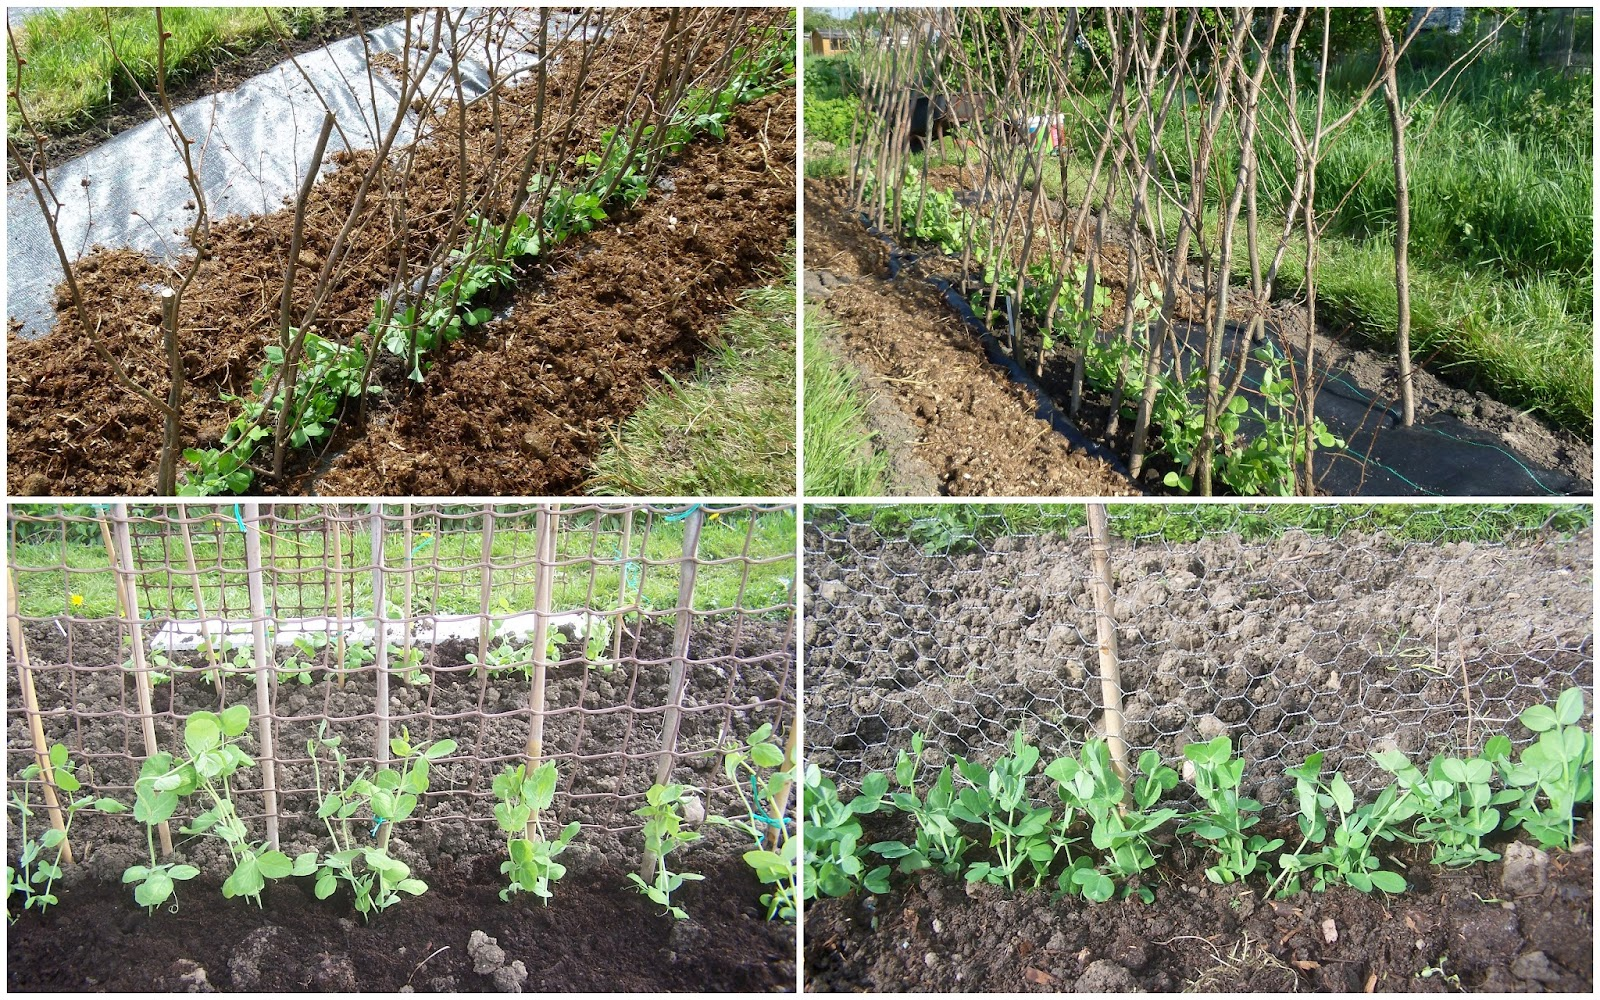 Our Plot at Green Lane Allotments: Getting the support right